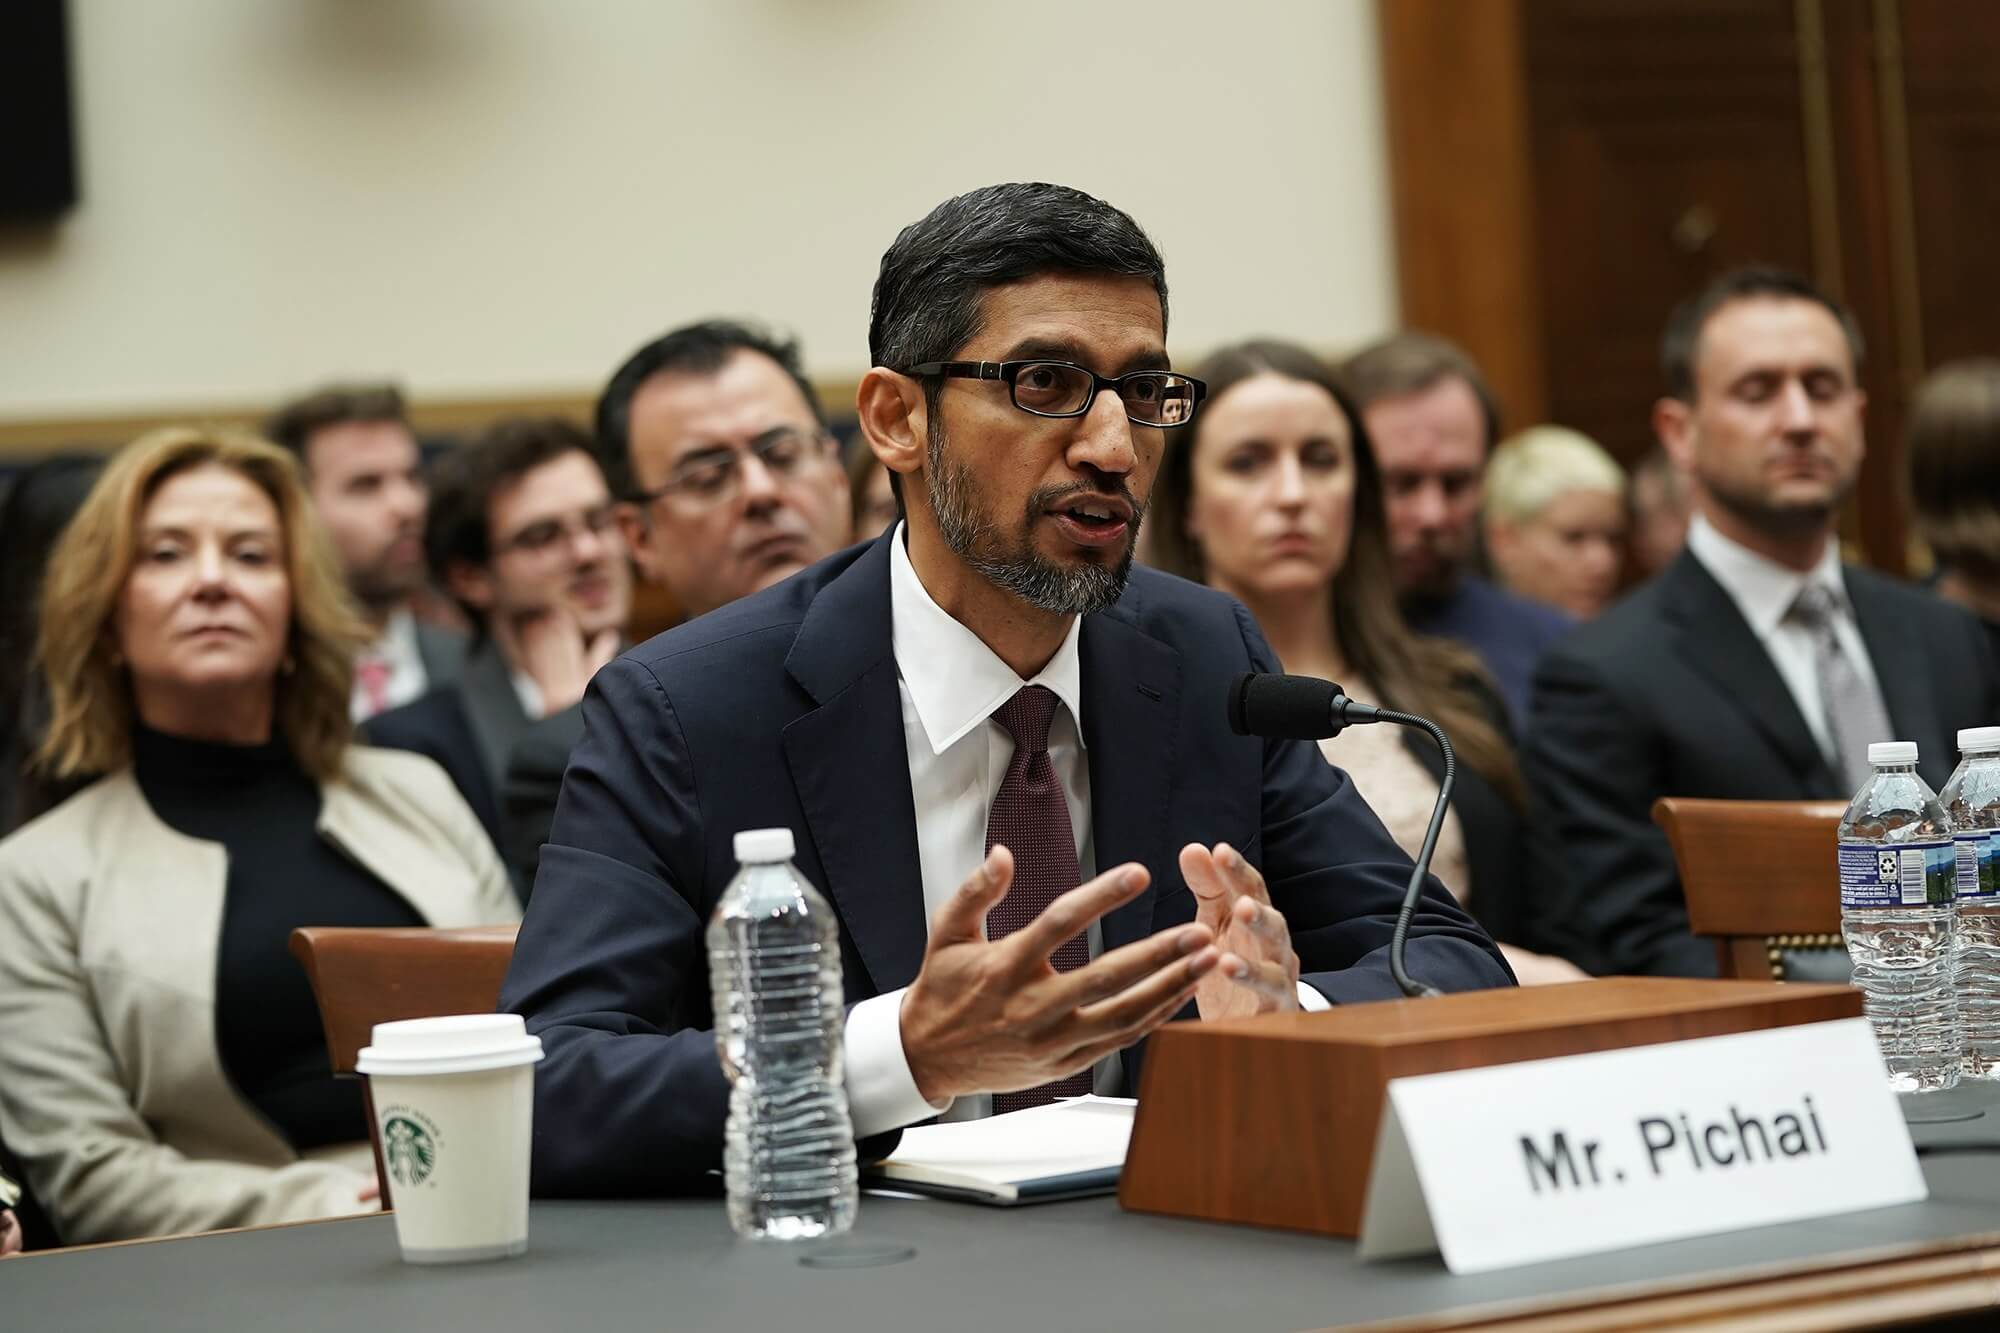 Why pictures of Donald Trump appear on Googling 'idiot?' Congresswoman asks Pichai